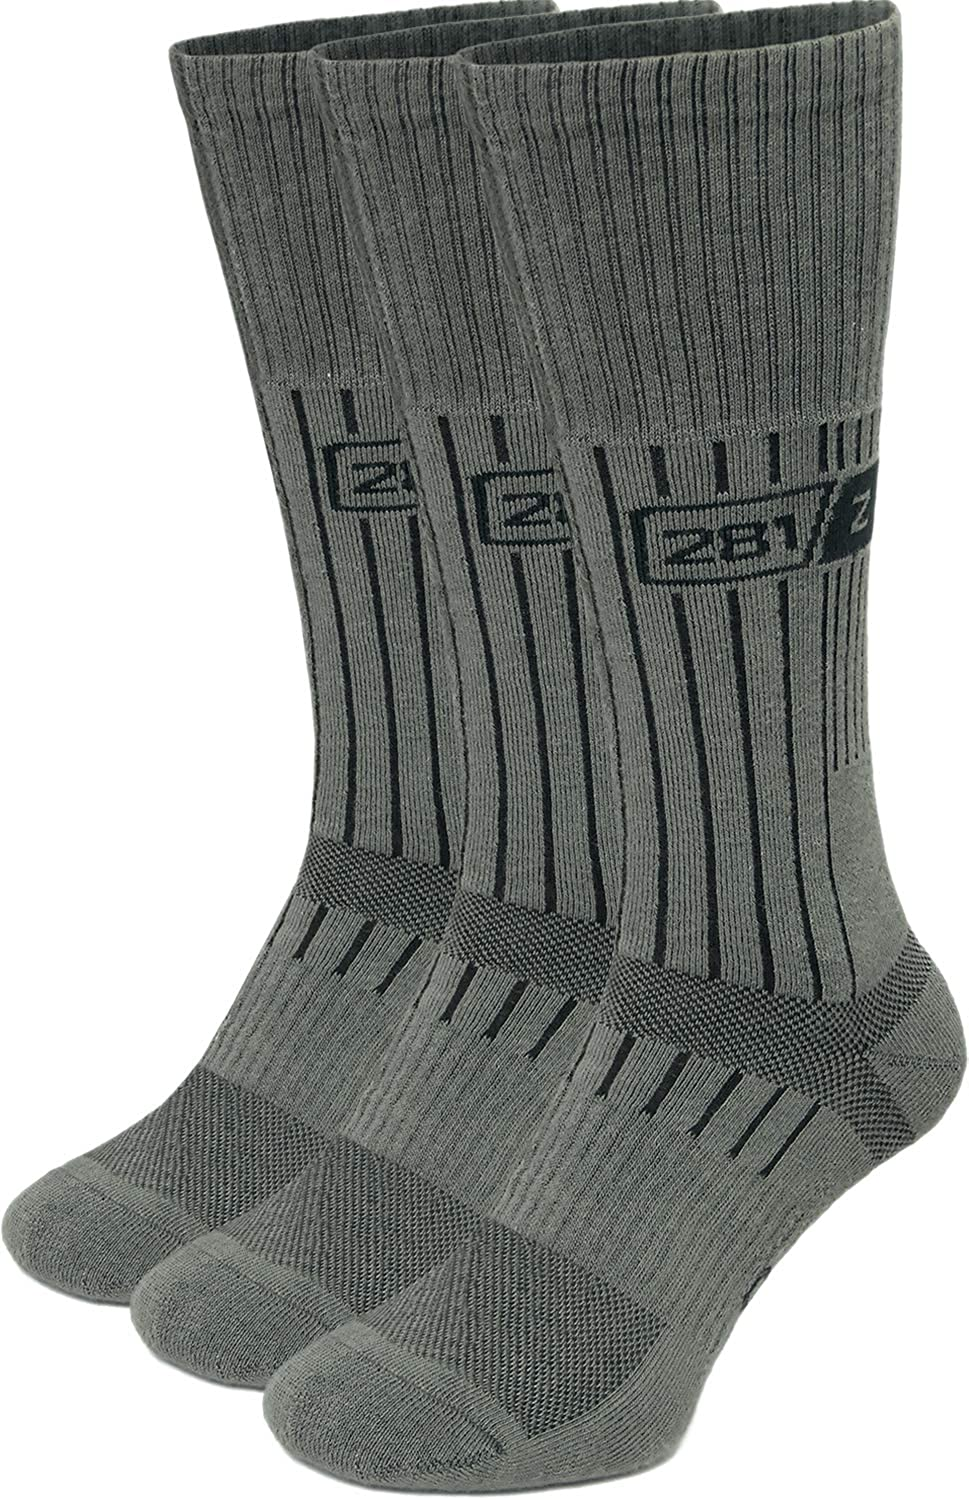 281Z Military Boot Socks Tactical Trekking Hiking Black Outdoor Athletic Sport